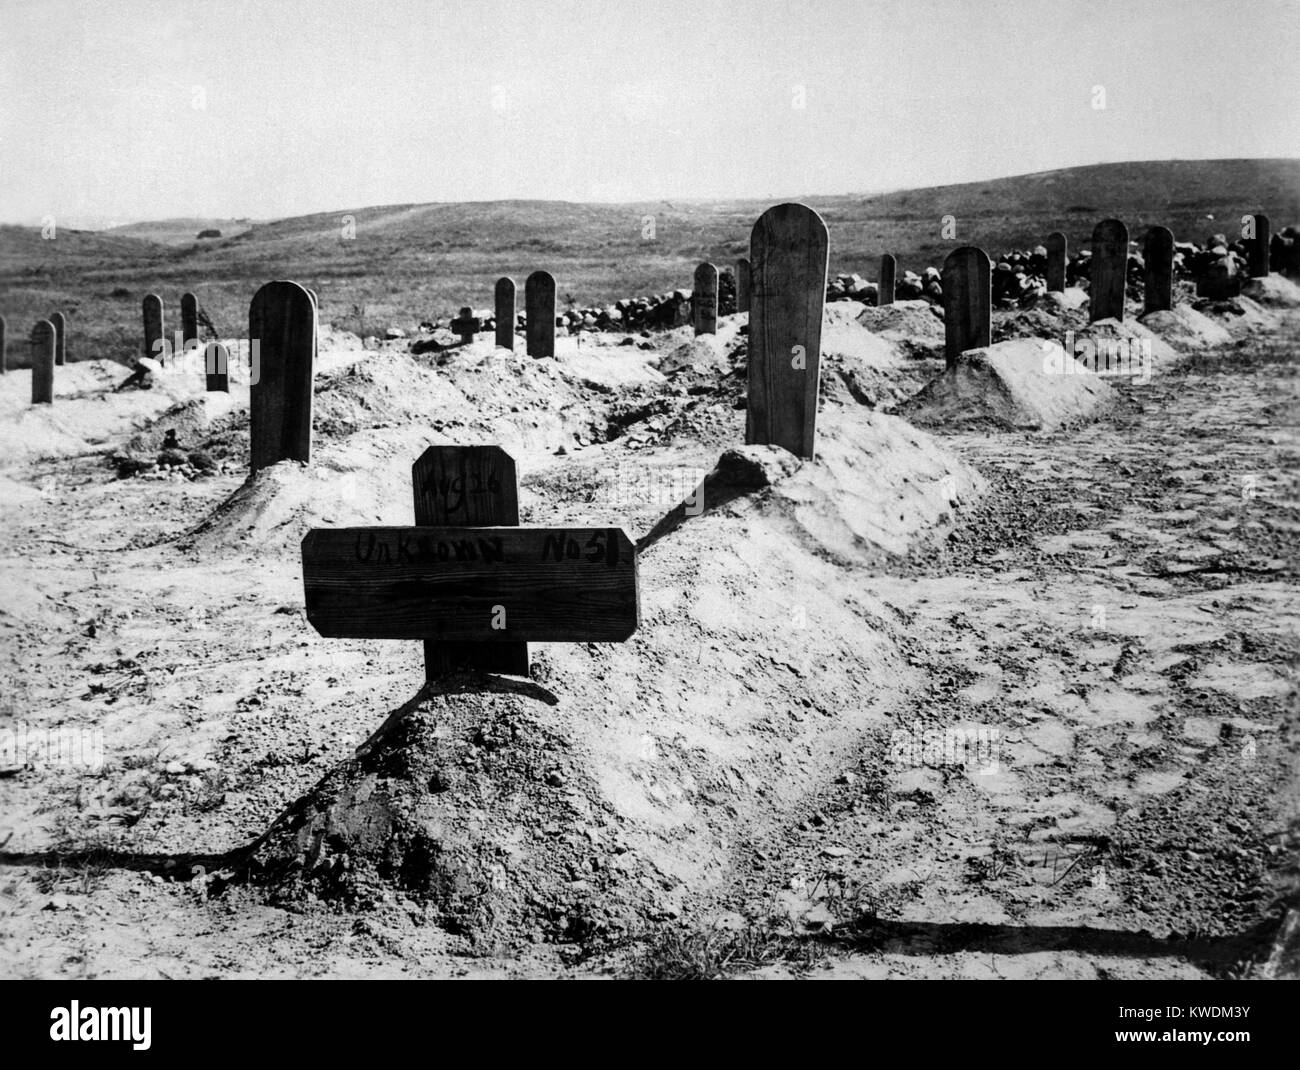 American soldiers graves in Cuba, c. 1898. From May 1898 until April 1899, US forces experienced 968 battle casualties Stock Photo